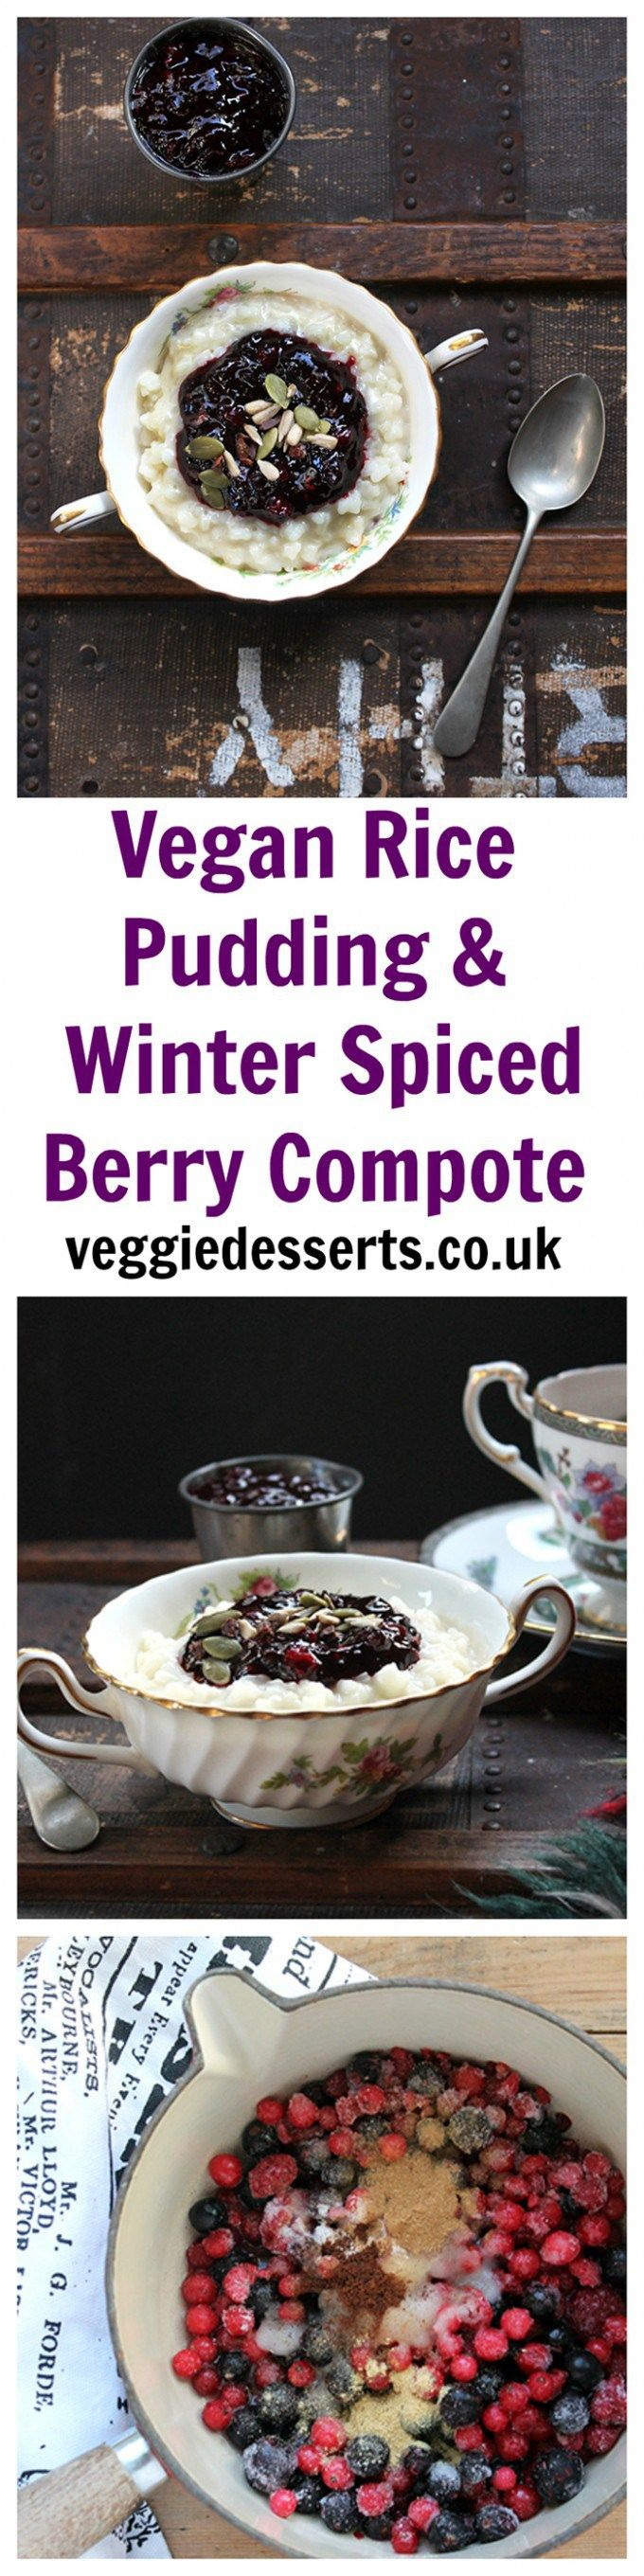 Vegan Rice Pudding with Winter Spiced Berry Compote | Veggie Desserts Blog  This vegan rice pudding is rich, creamy and easy to make. I've topped it with a quick winter spiced berry compote that has a sweet sharpness that contrasts the rich pudding beautifully.